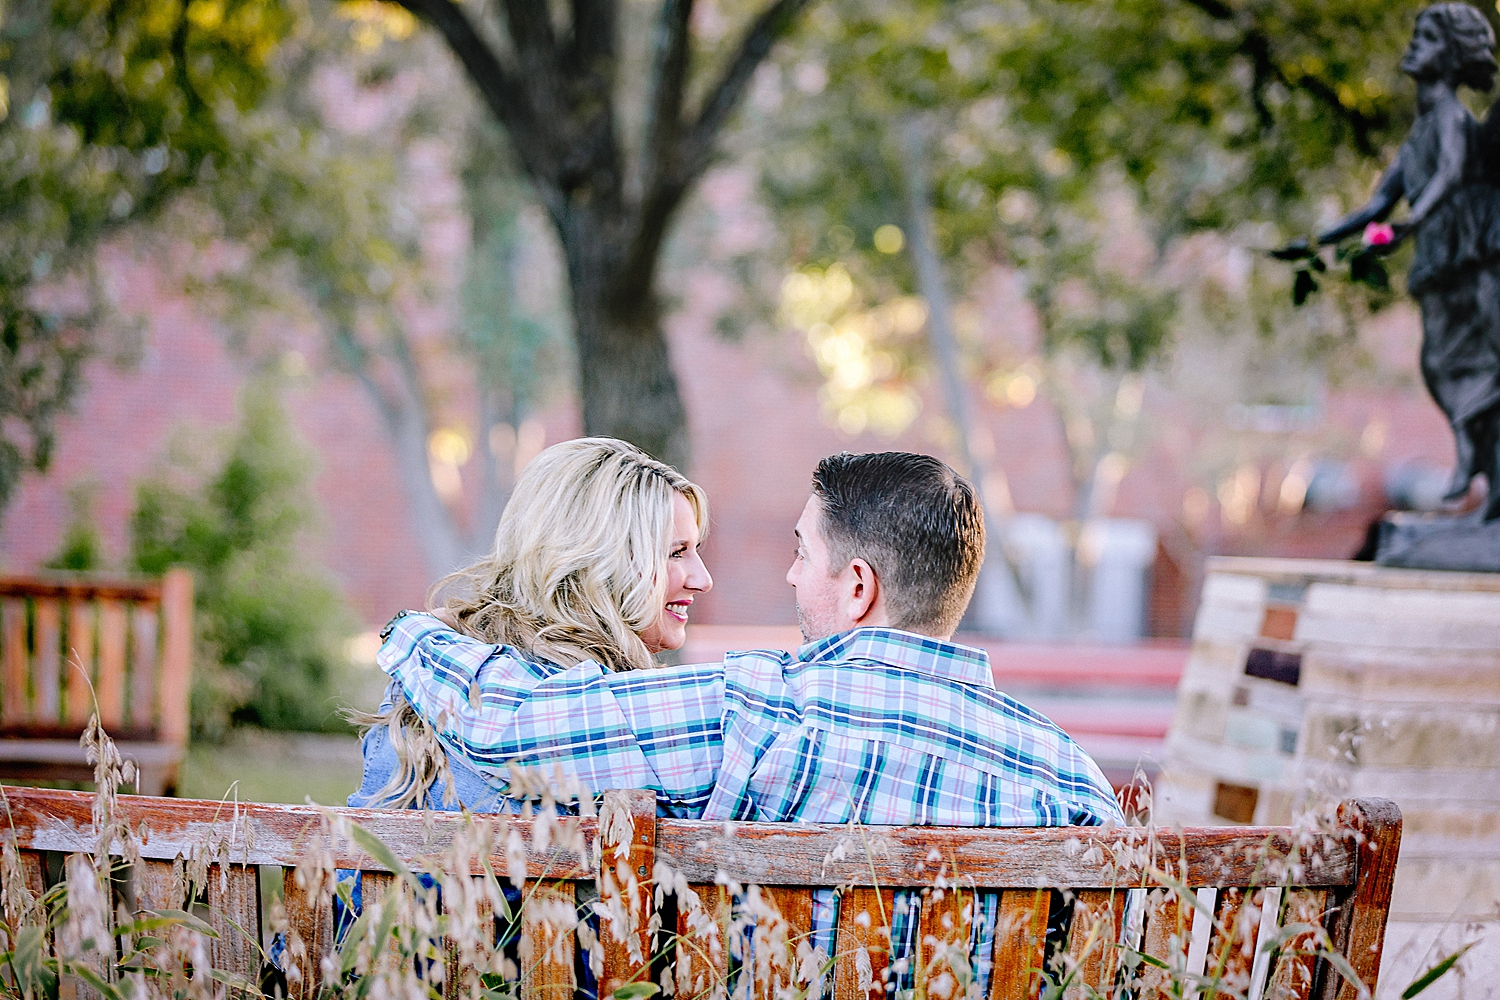 Engagement-Photo-Session-University-of-Incarnate-Word-UIW-San-Antonio-Texas-Carly-Barton-Photography_0018.jpg